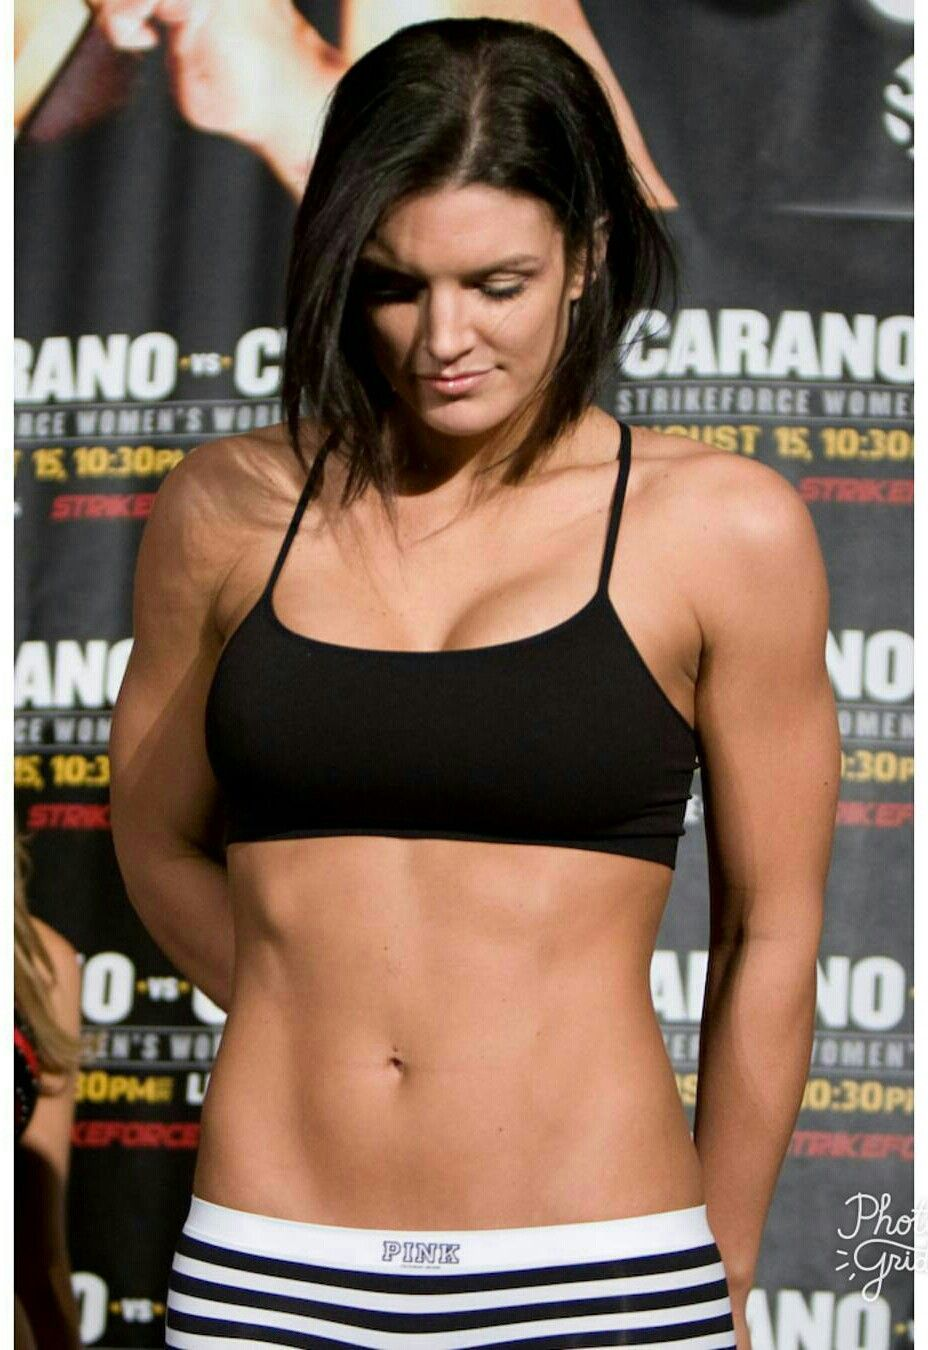 Watch Gina Carano Nude She's the Hottest MMA Fighter Ever - PICS video